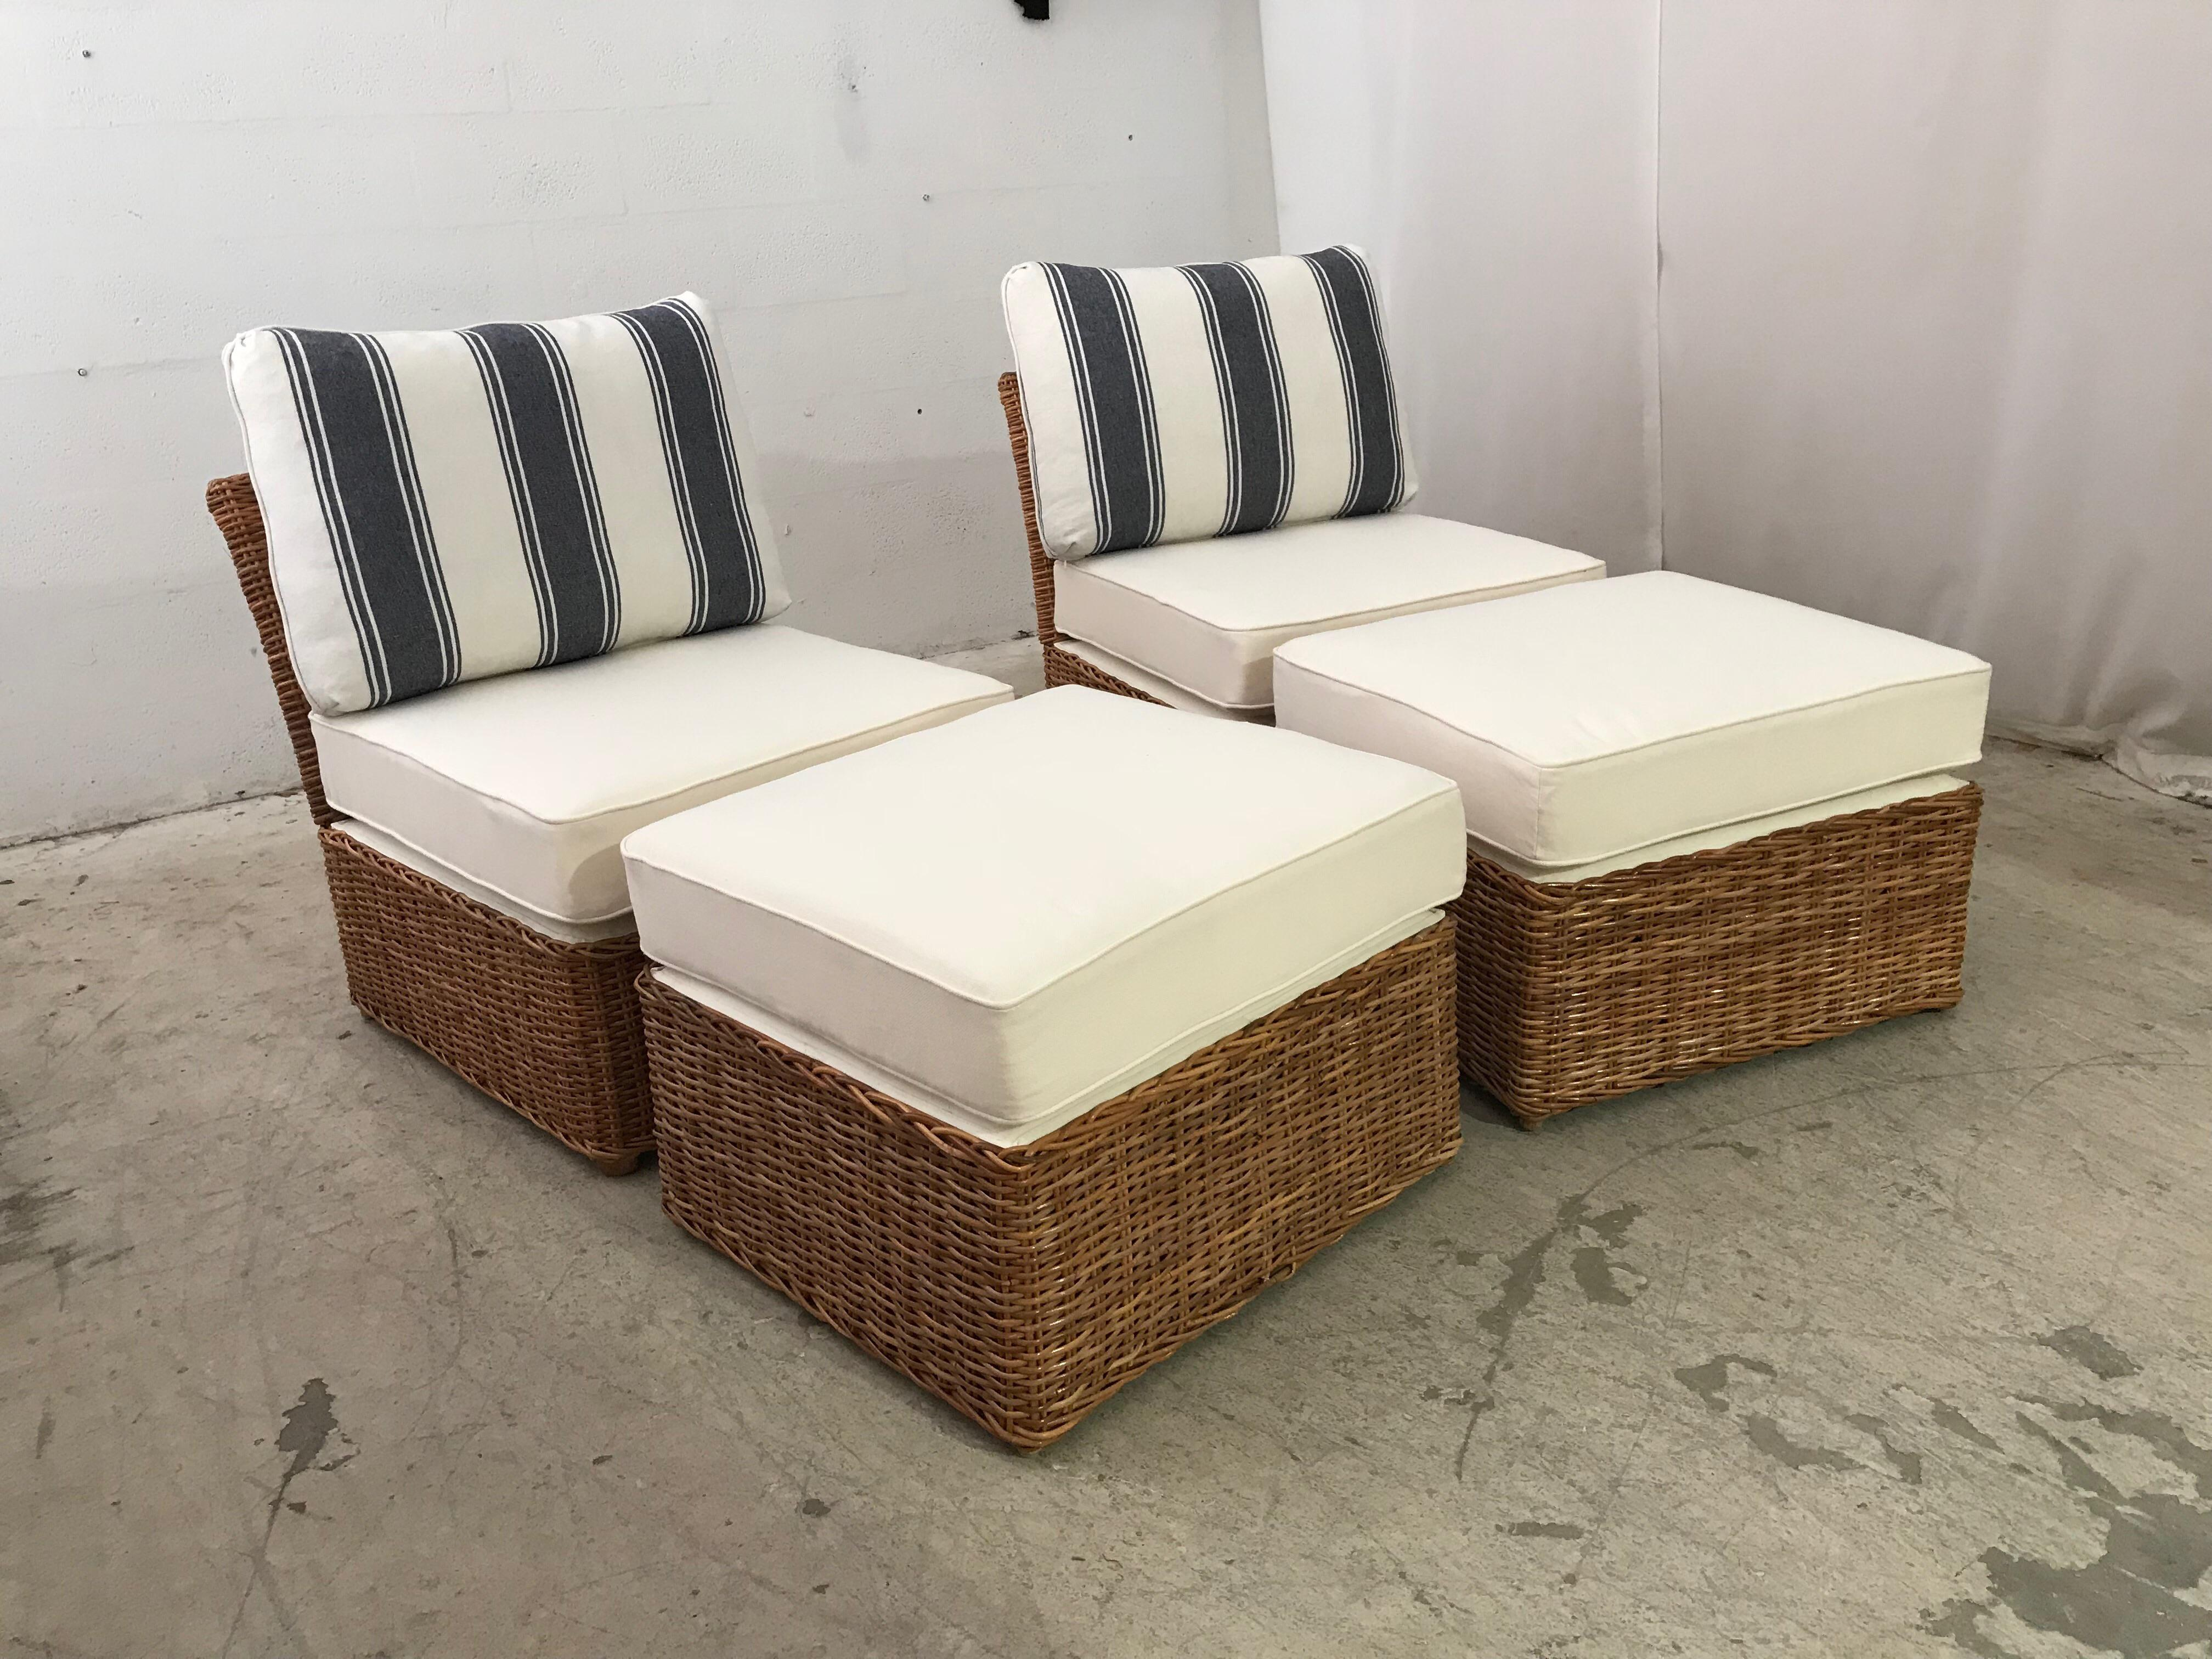 A Natural Woven Rattan Chair And Ottoman Set. All New Seat And Ottoman  Cushions Covered